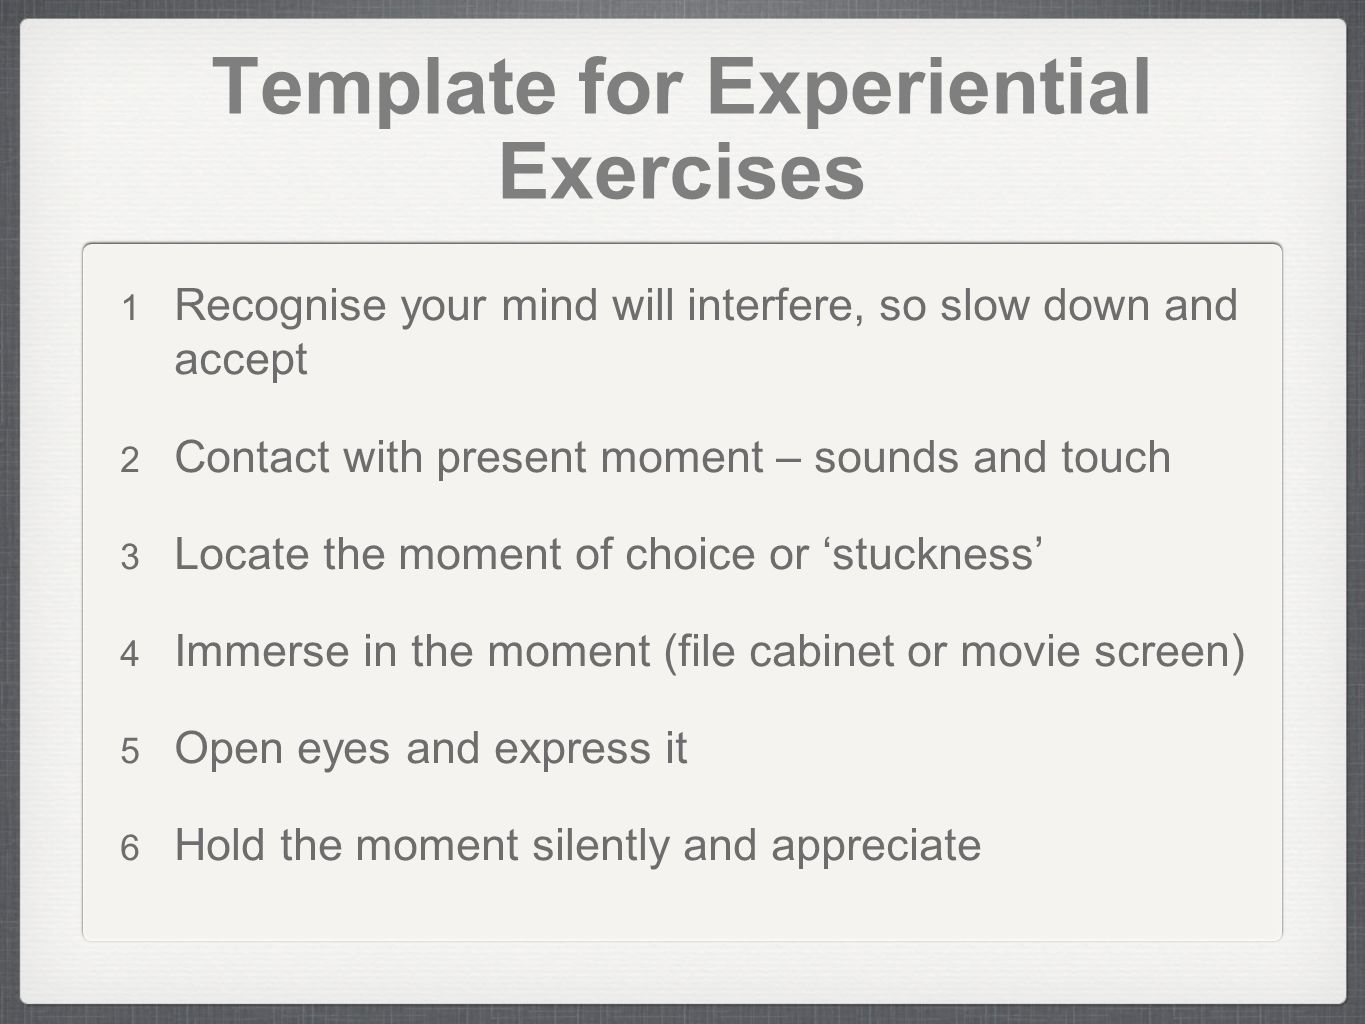 Template for Experiential Exercises